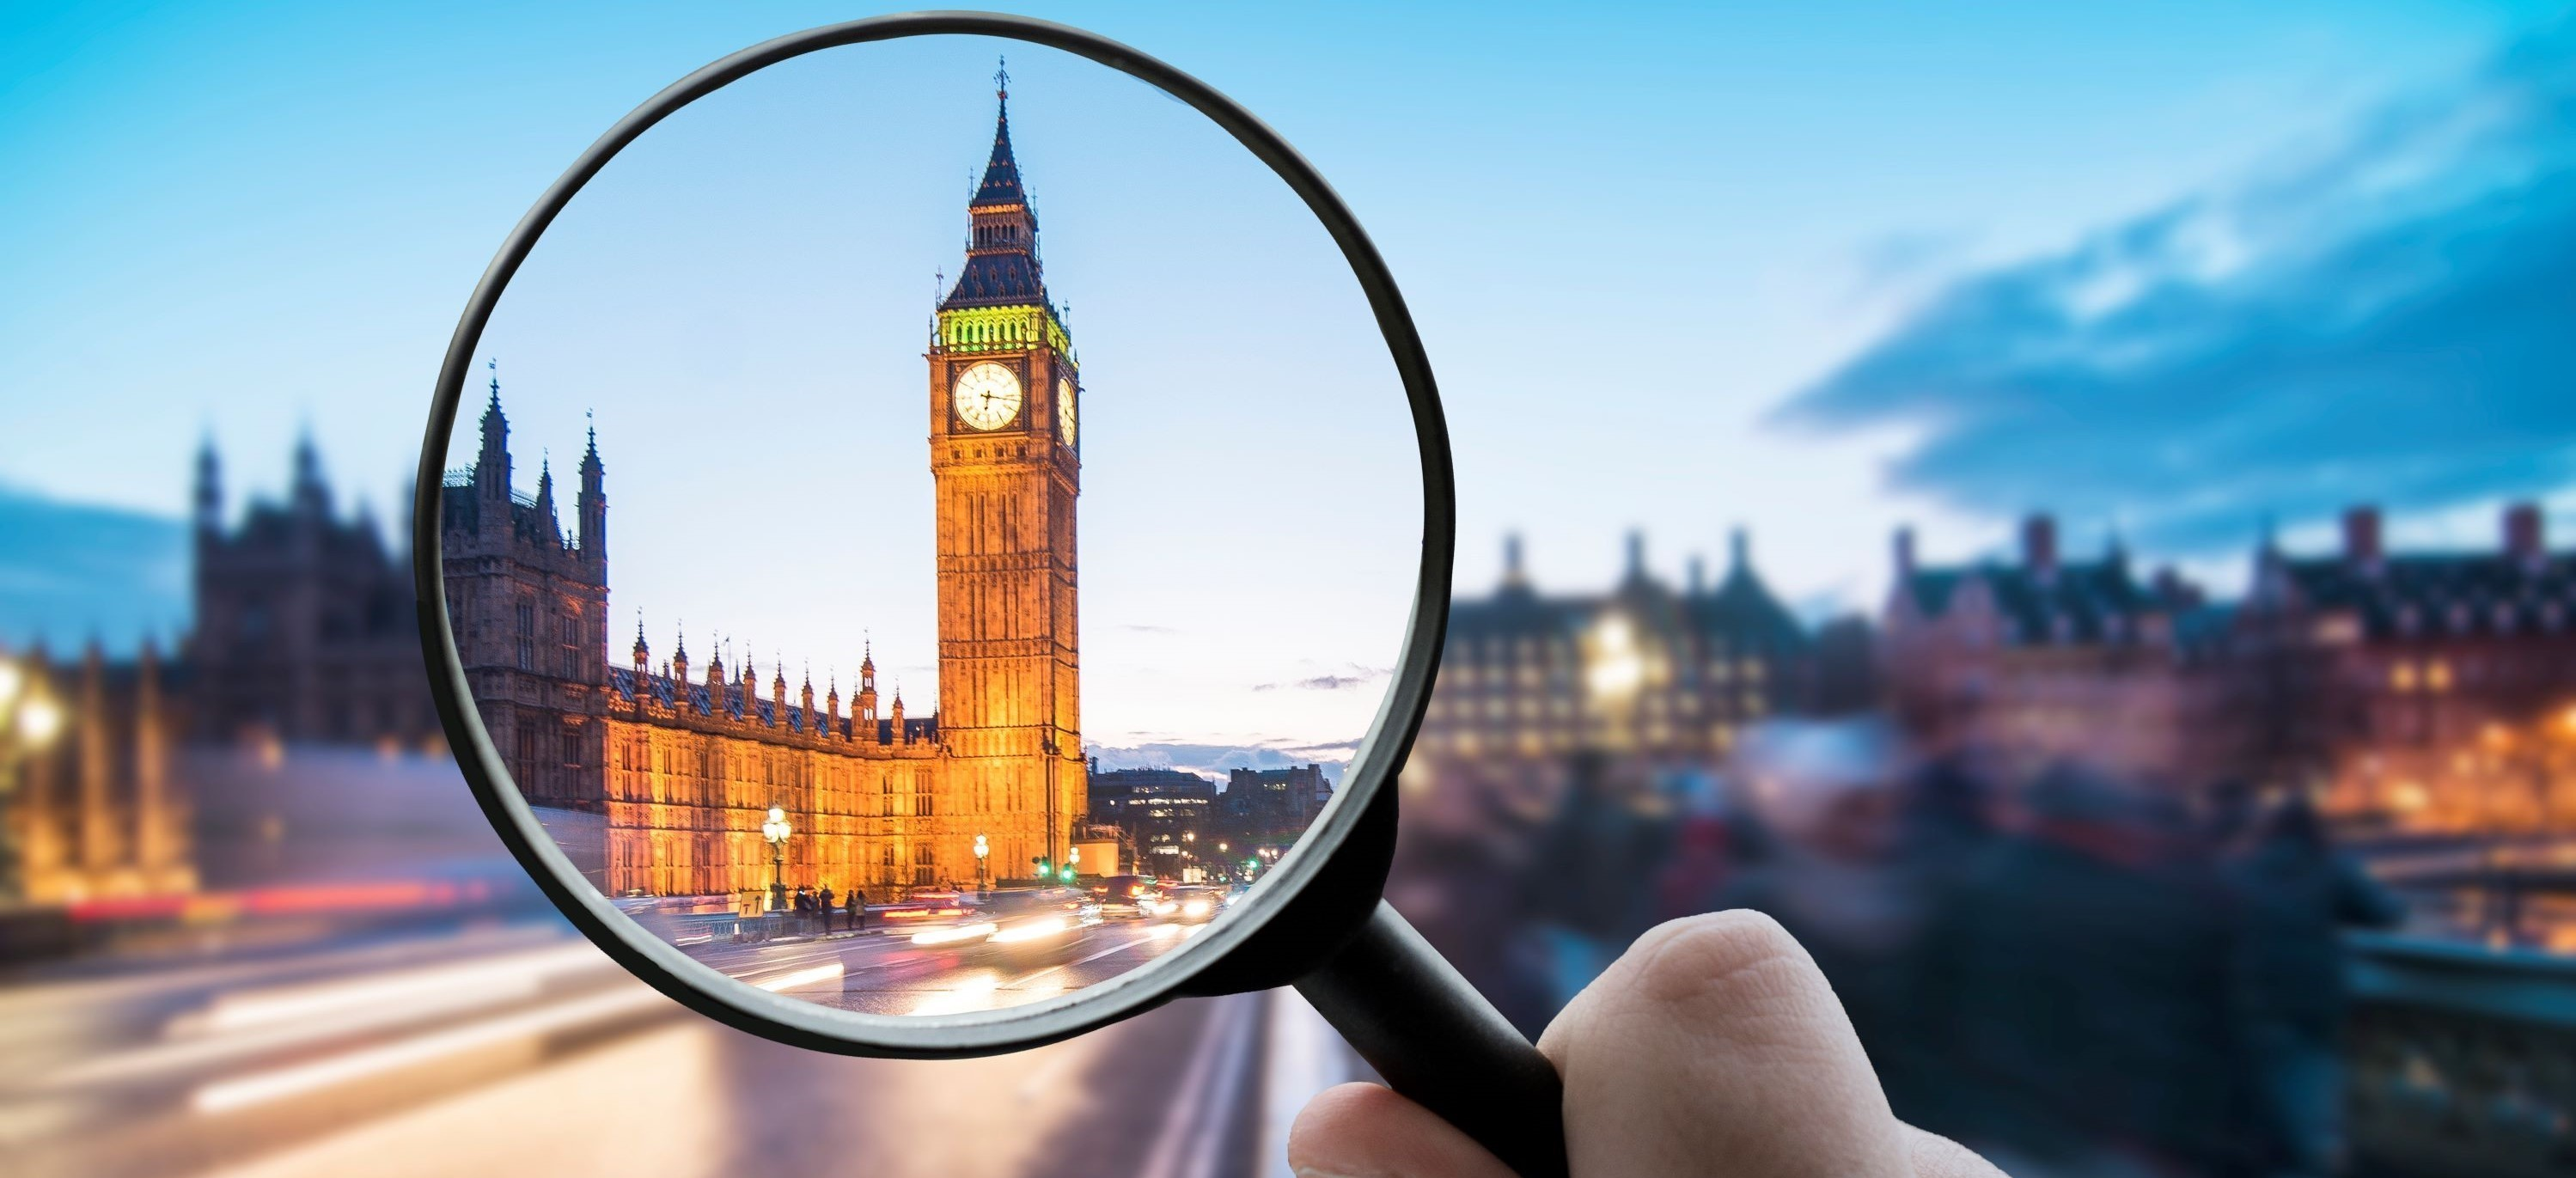 Houses of Parliament through a magnifying glass